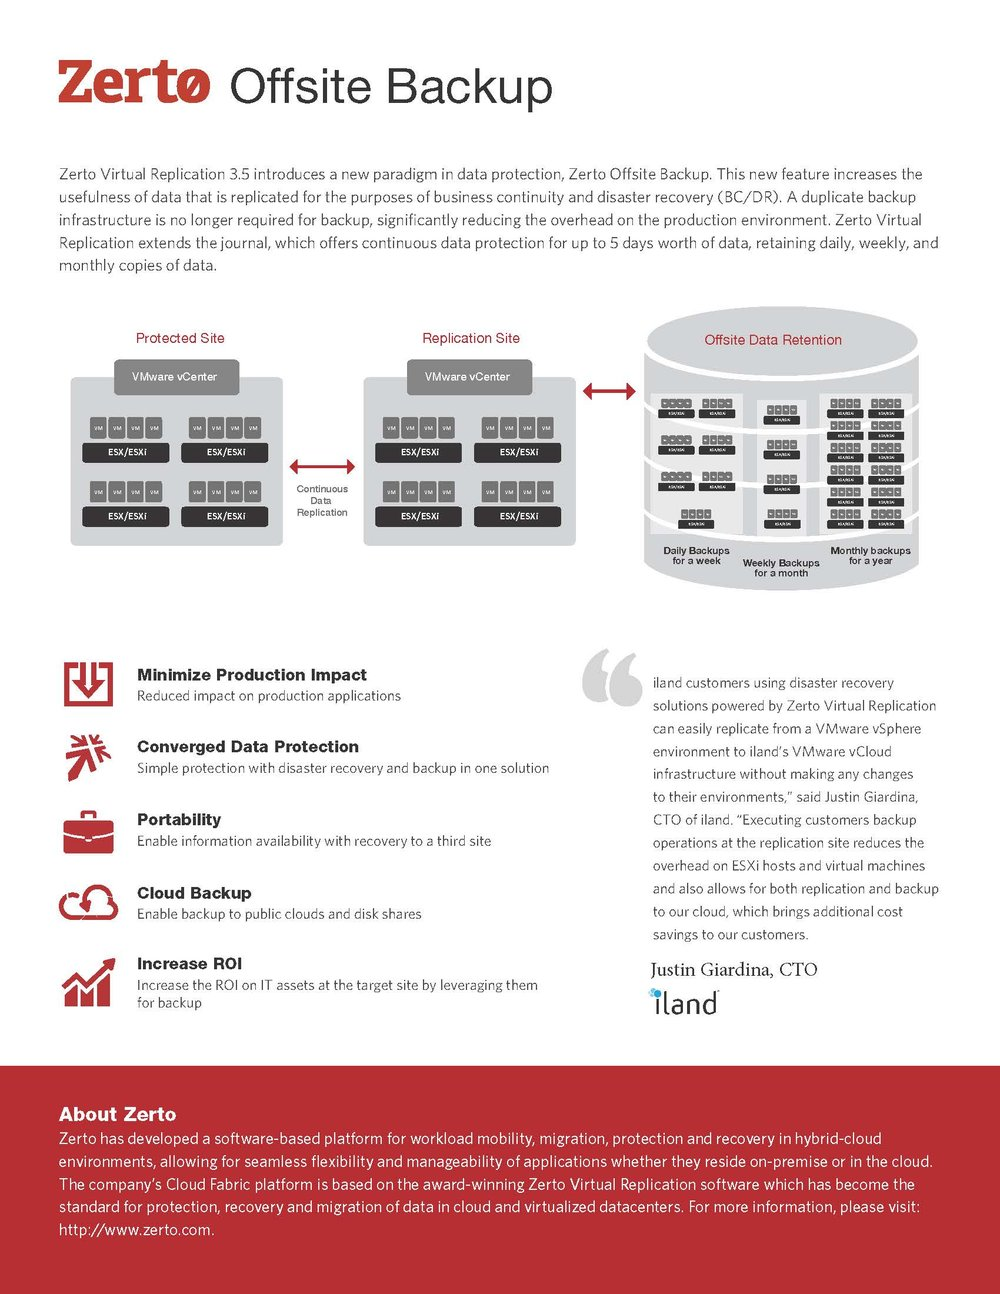 Click to download the full details of Zerto's Offsite Backup Solution.